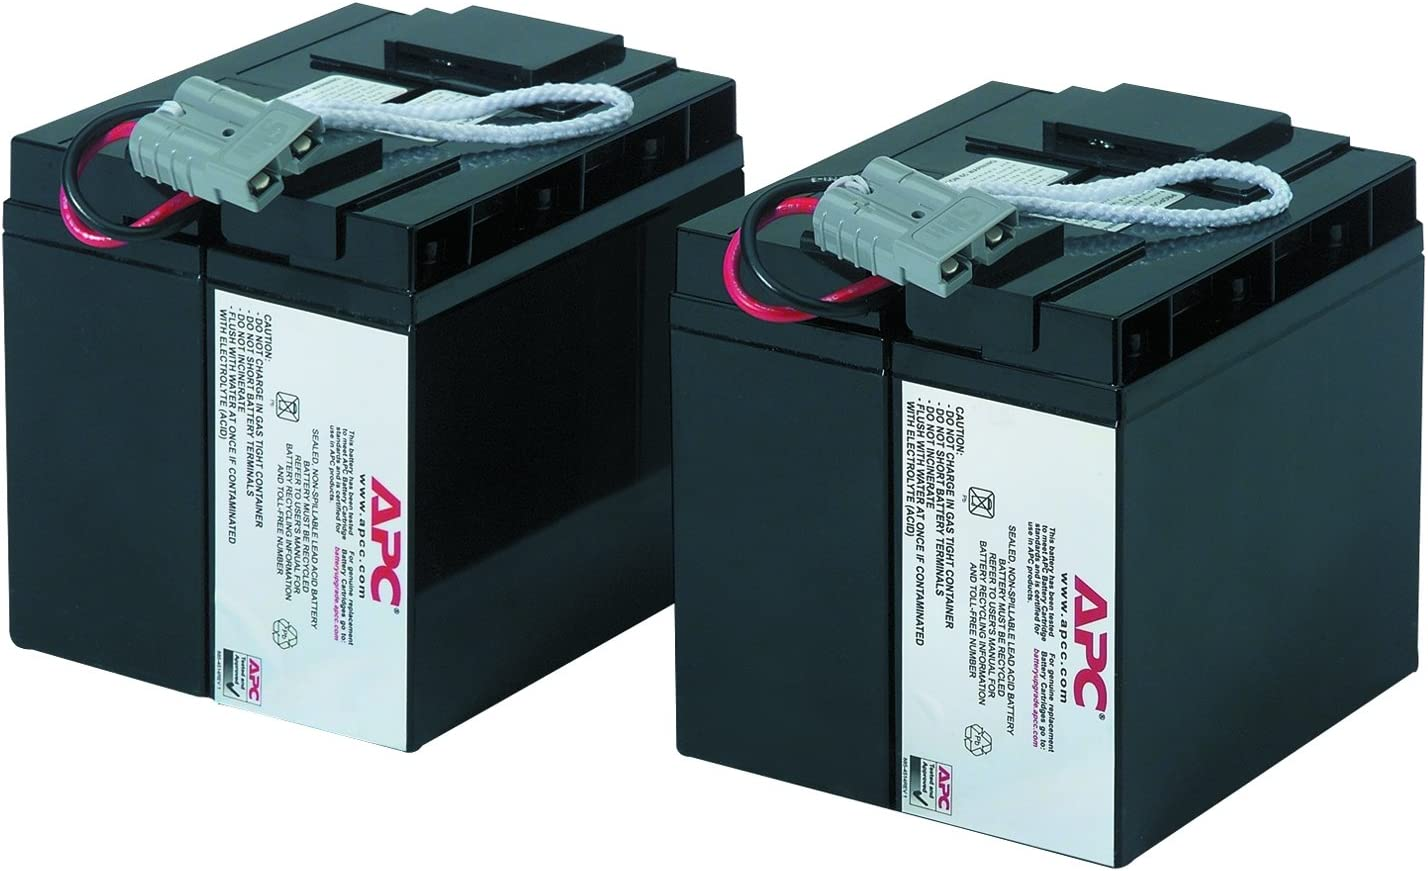 APC UPS Battery Replacement, RBC55, for APC Smart-UPS Models SMT2200, SMT3000, SMT2200C, SMT200US, SMT3000C, SUA2200, SUA3000, and select others